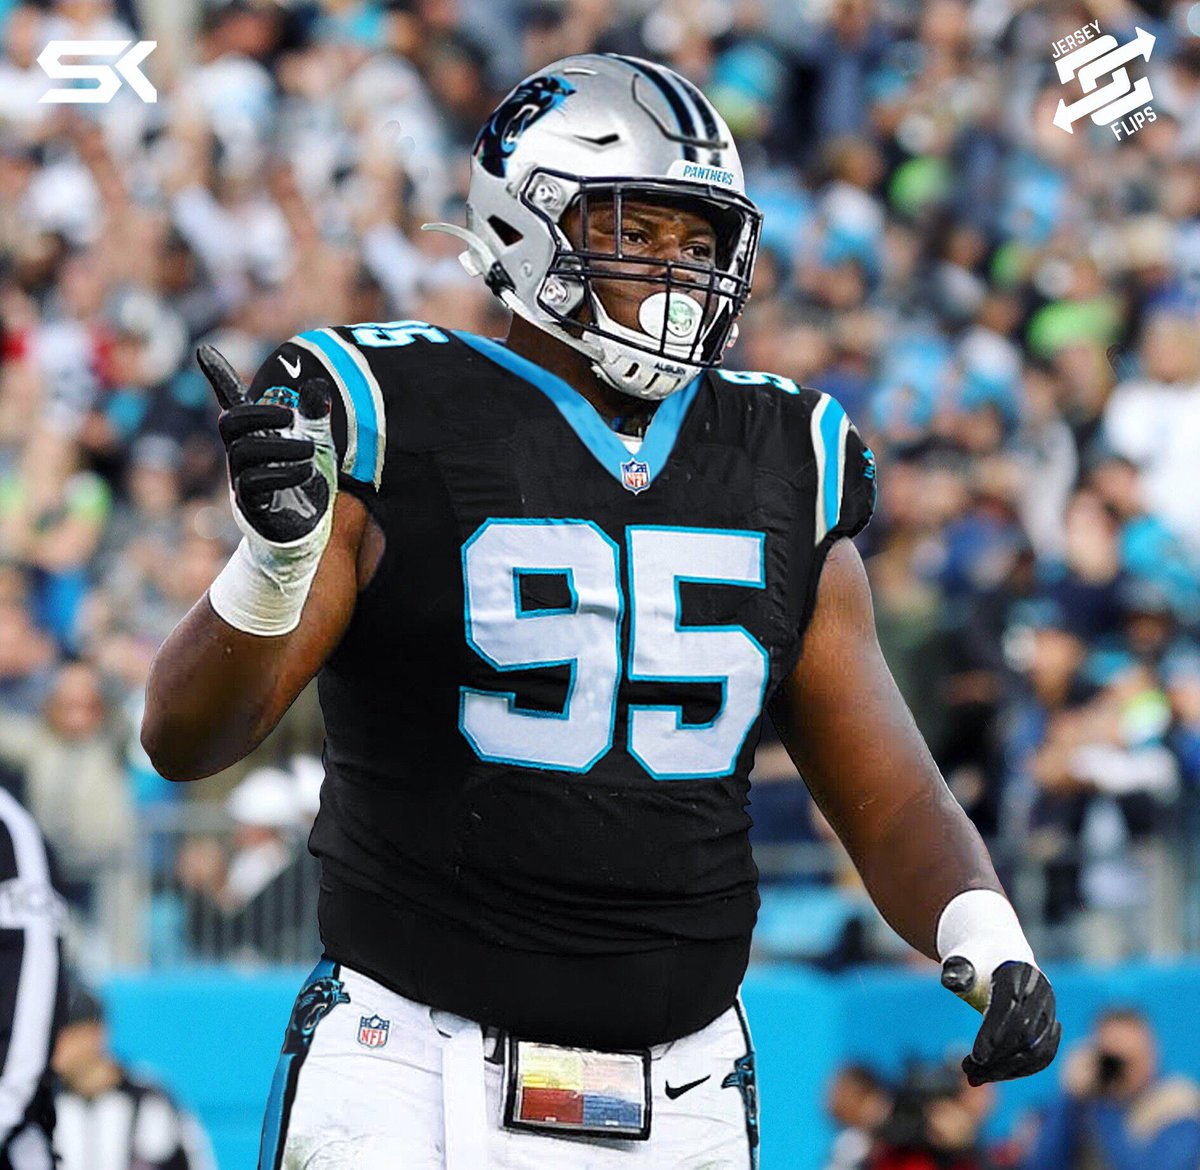 The Big 95 for @DerrickBrownAU5 !! #auwesome #KeepPounding